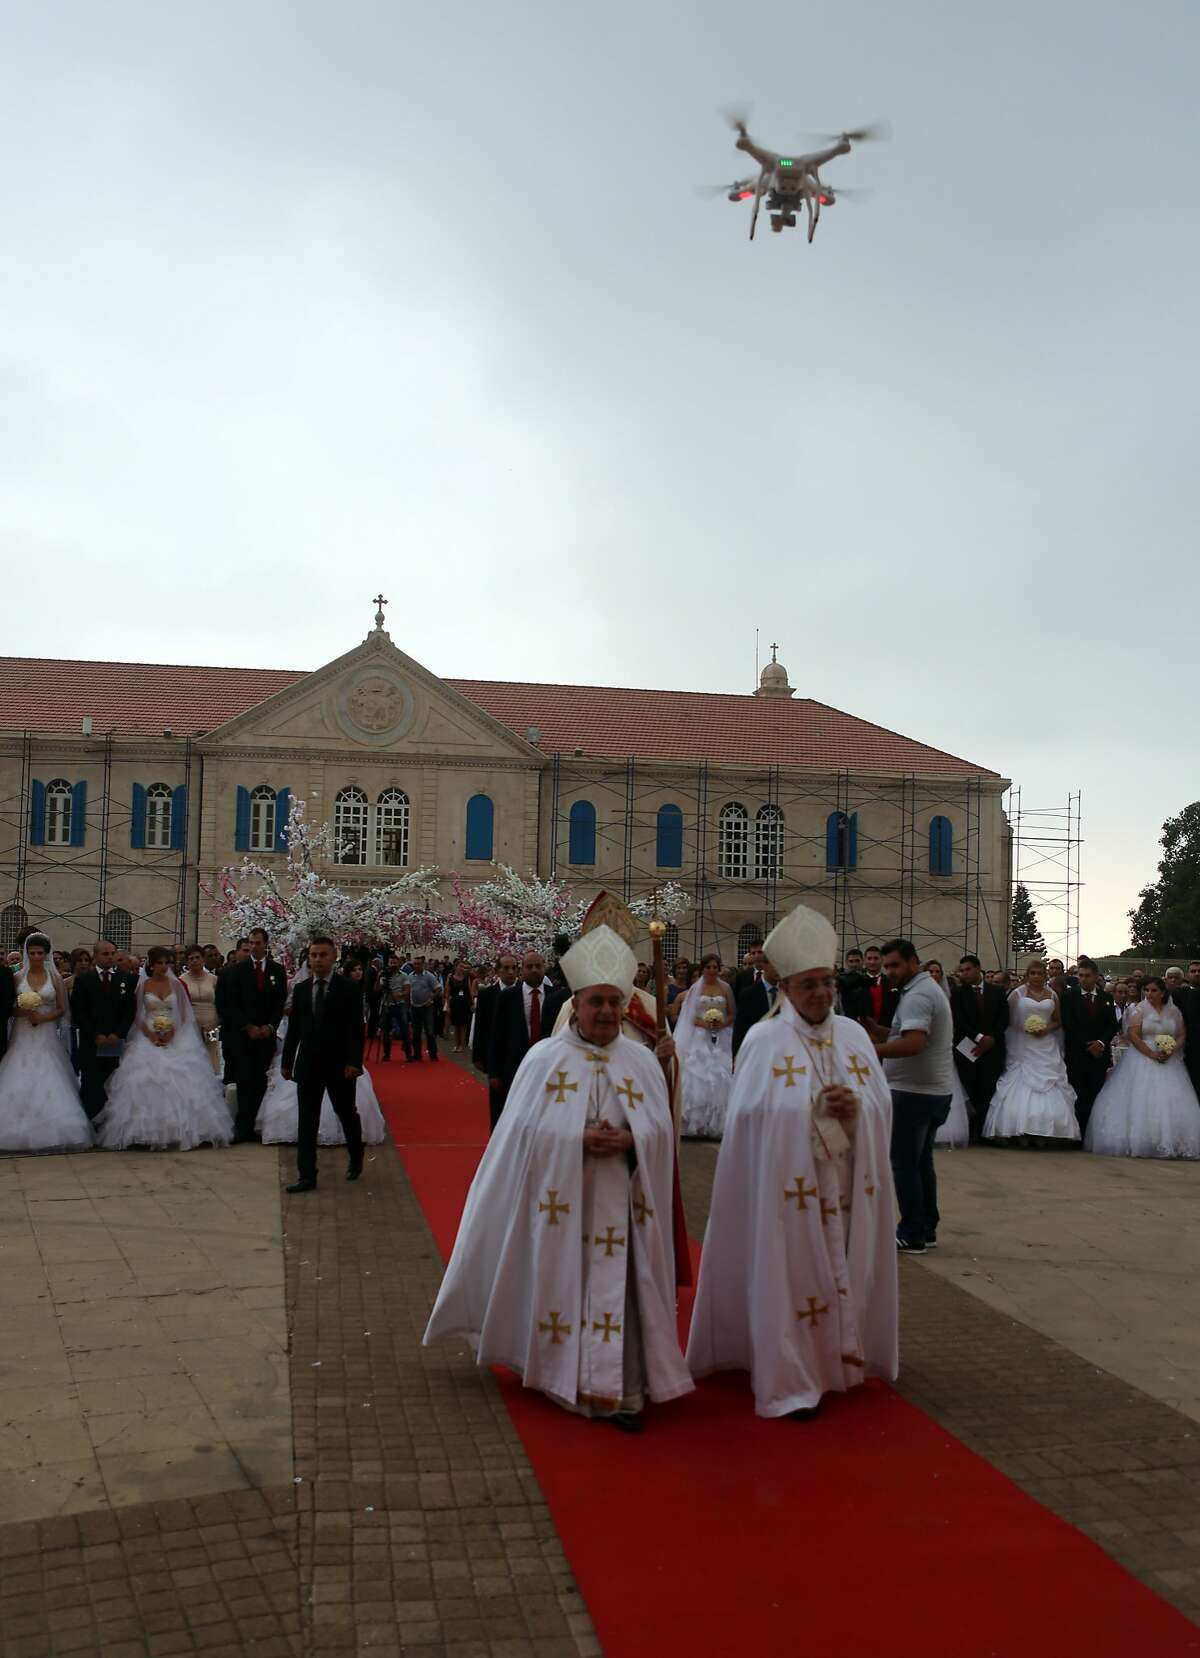 A drone flies over Lebanese Maronite Christian priests and couples taking part in a mass wedding at the Maronite Patriarchate in Bkerke on September 6, 2015. Thirty-seven couple got married during the event organised by the Maronite league. AFP PHOTO / PATRICK BAZPATRICK BAZ/AFP/Getty Images